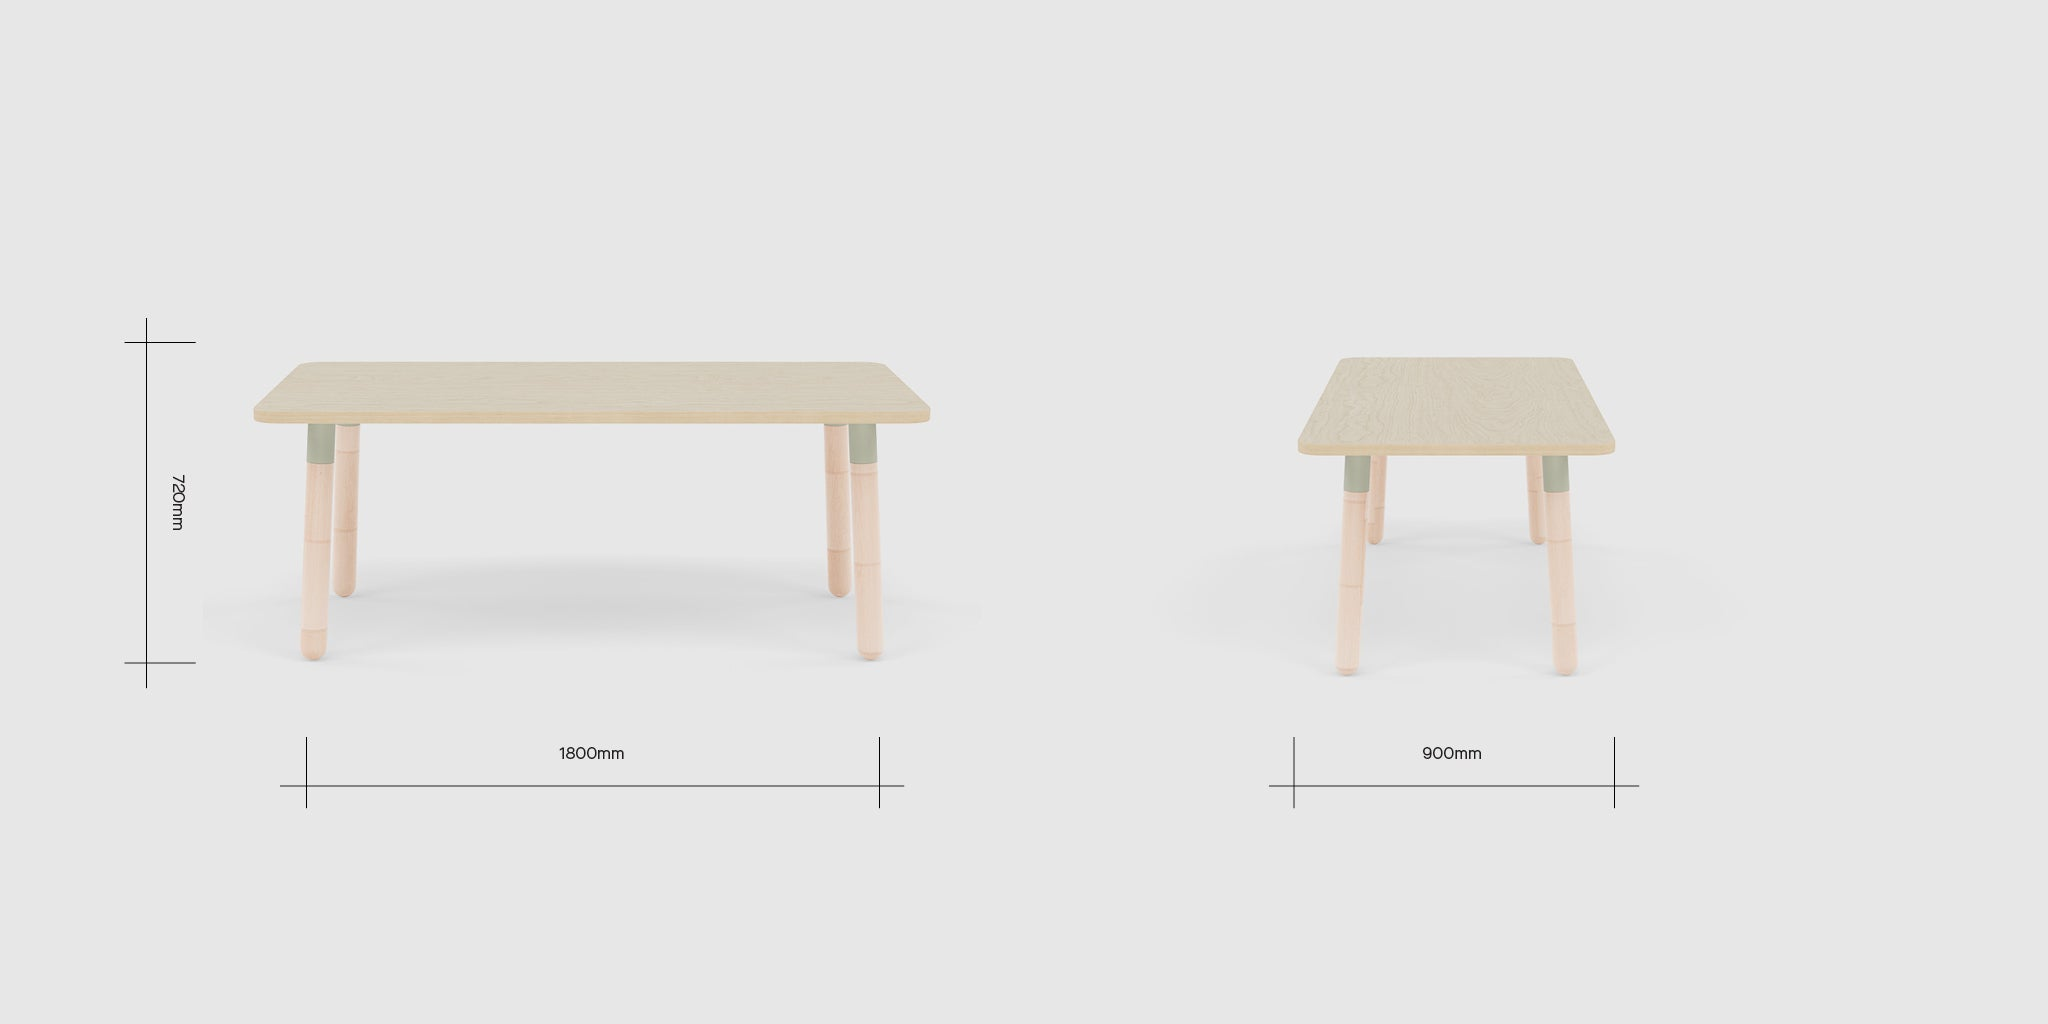 PBS 4 Person Table Dimensions